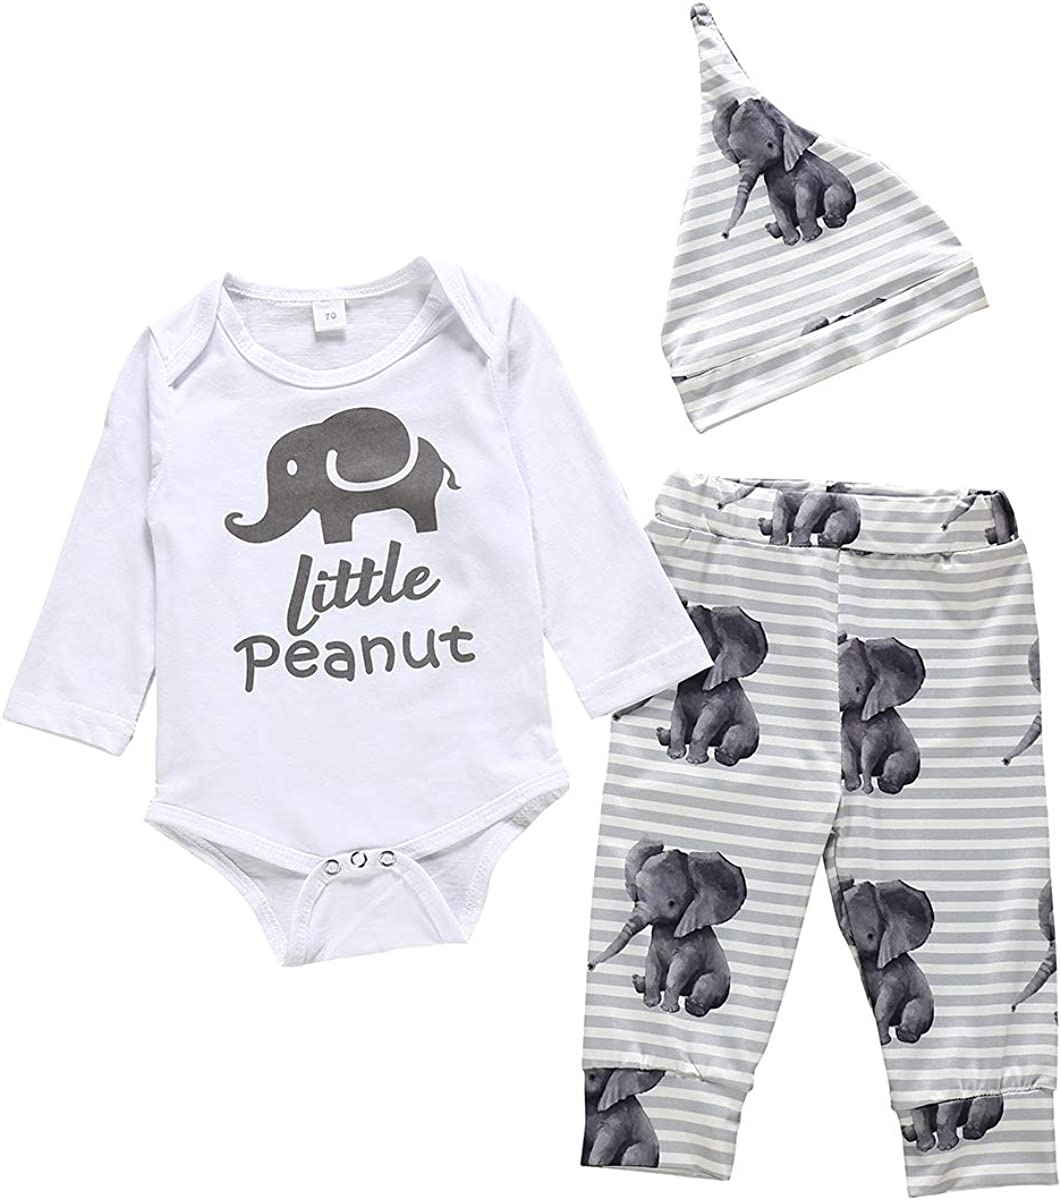 Toddler Baby Boys Outfits Sets Newborn Long Sleeve Romper Bear Animal Bodysuit Top with Geometry Pants Set + Hat